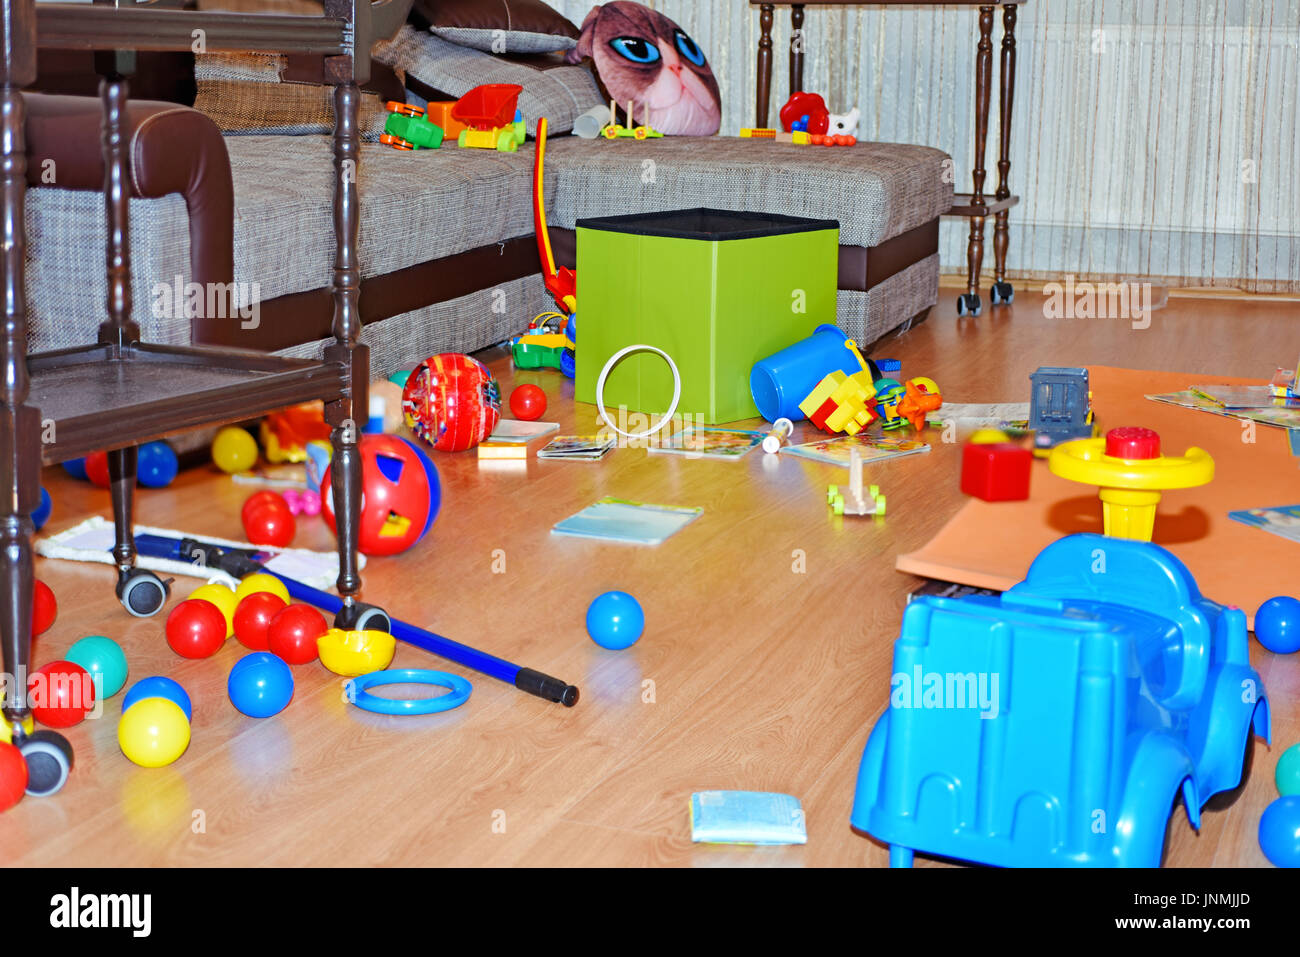 Childrens Toys Mess Stock Photos Childrens Toys Mess Stock Images